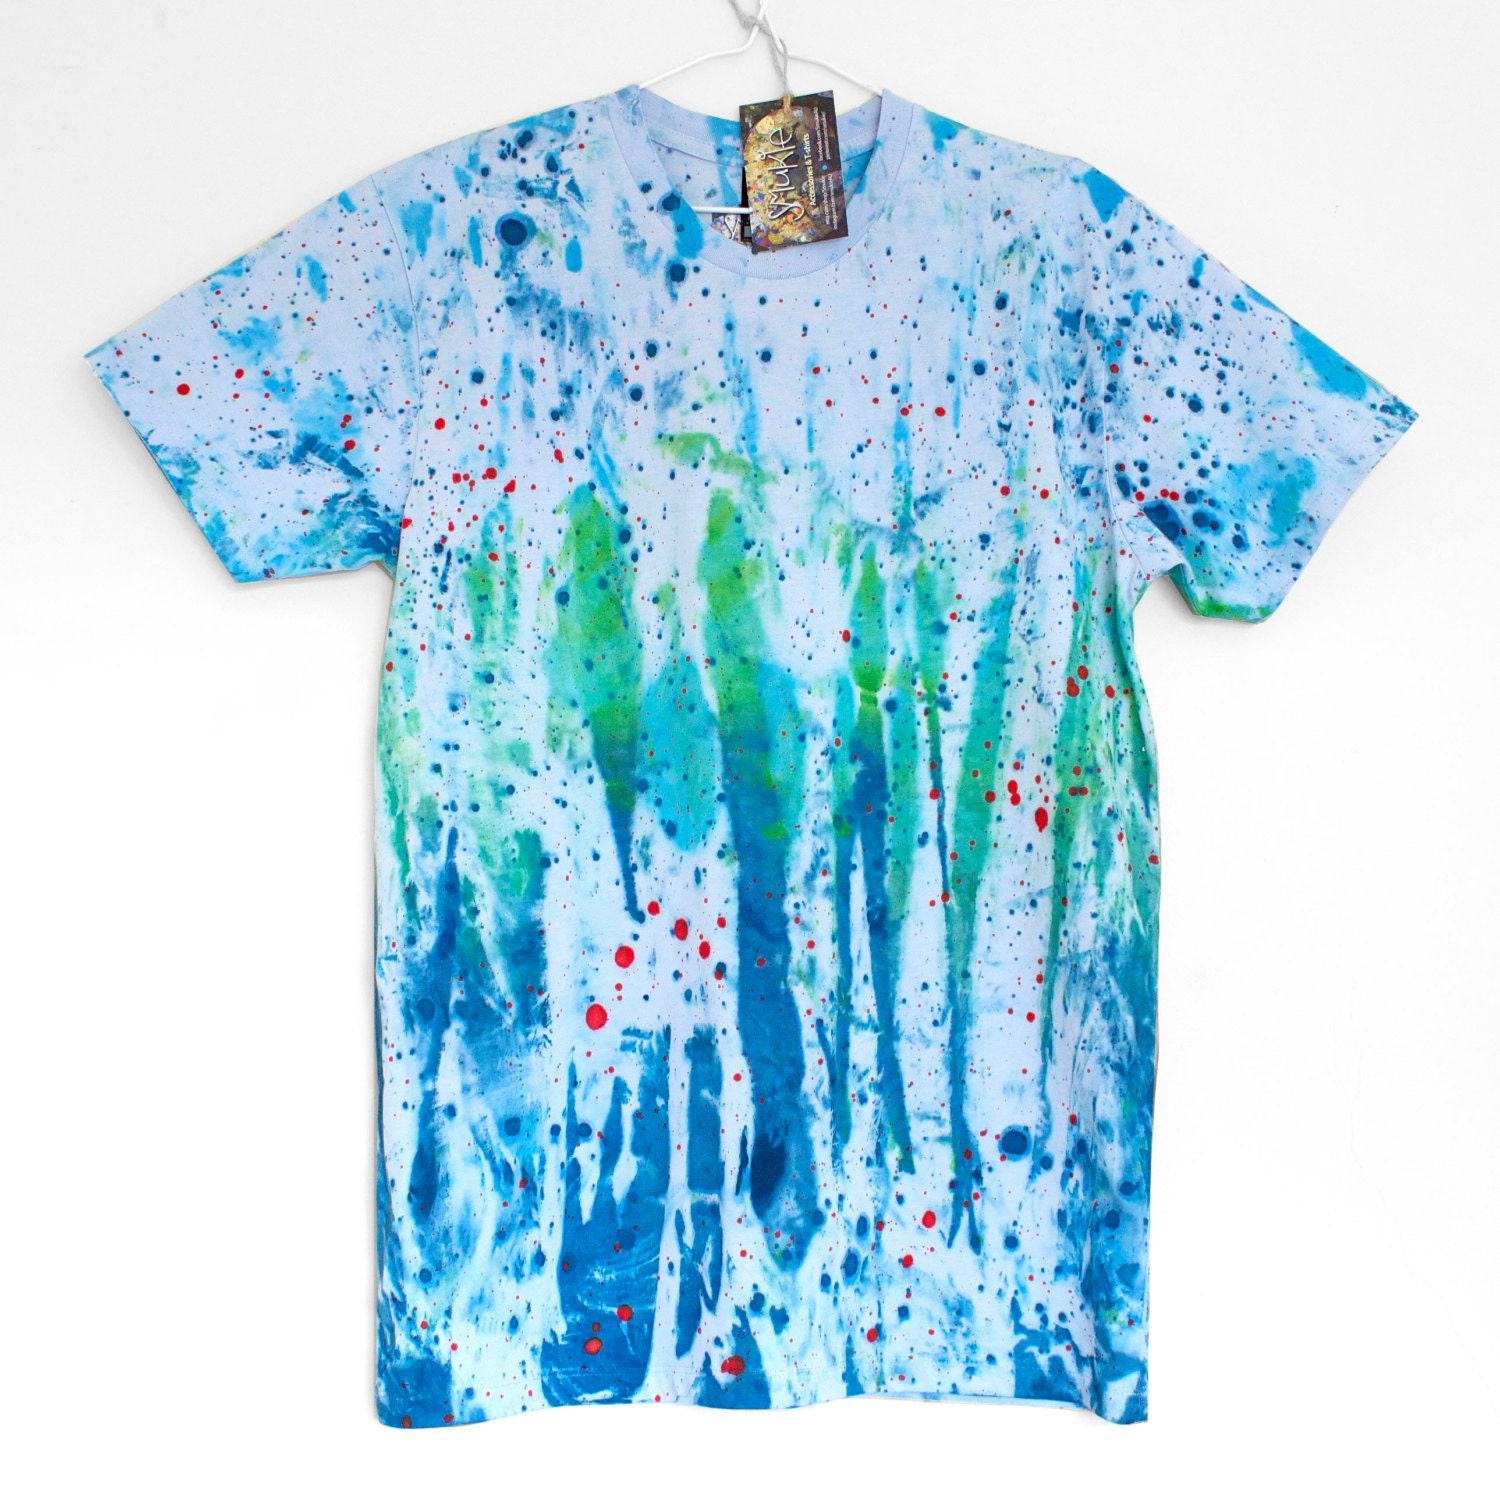 Dream blue 100 cotton t shirt hand painted blue tshirt for Unusual shirts for men